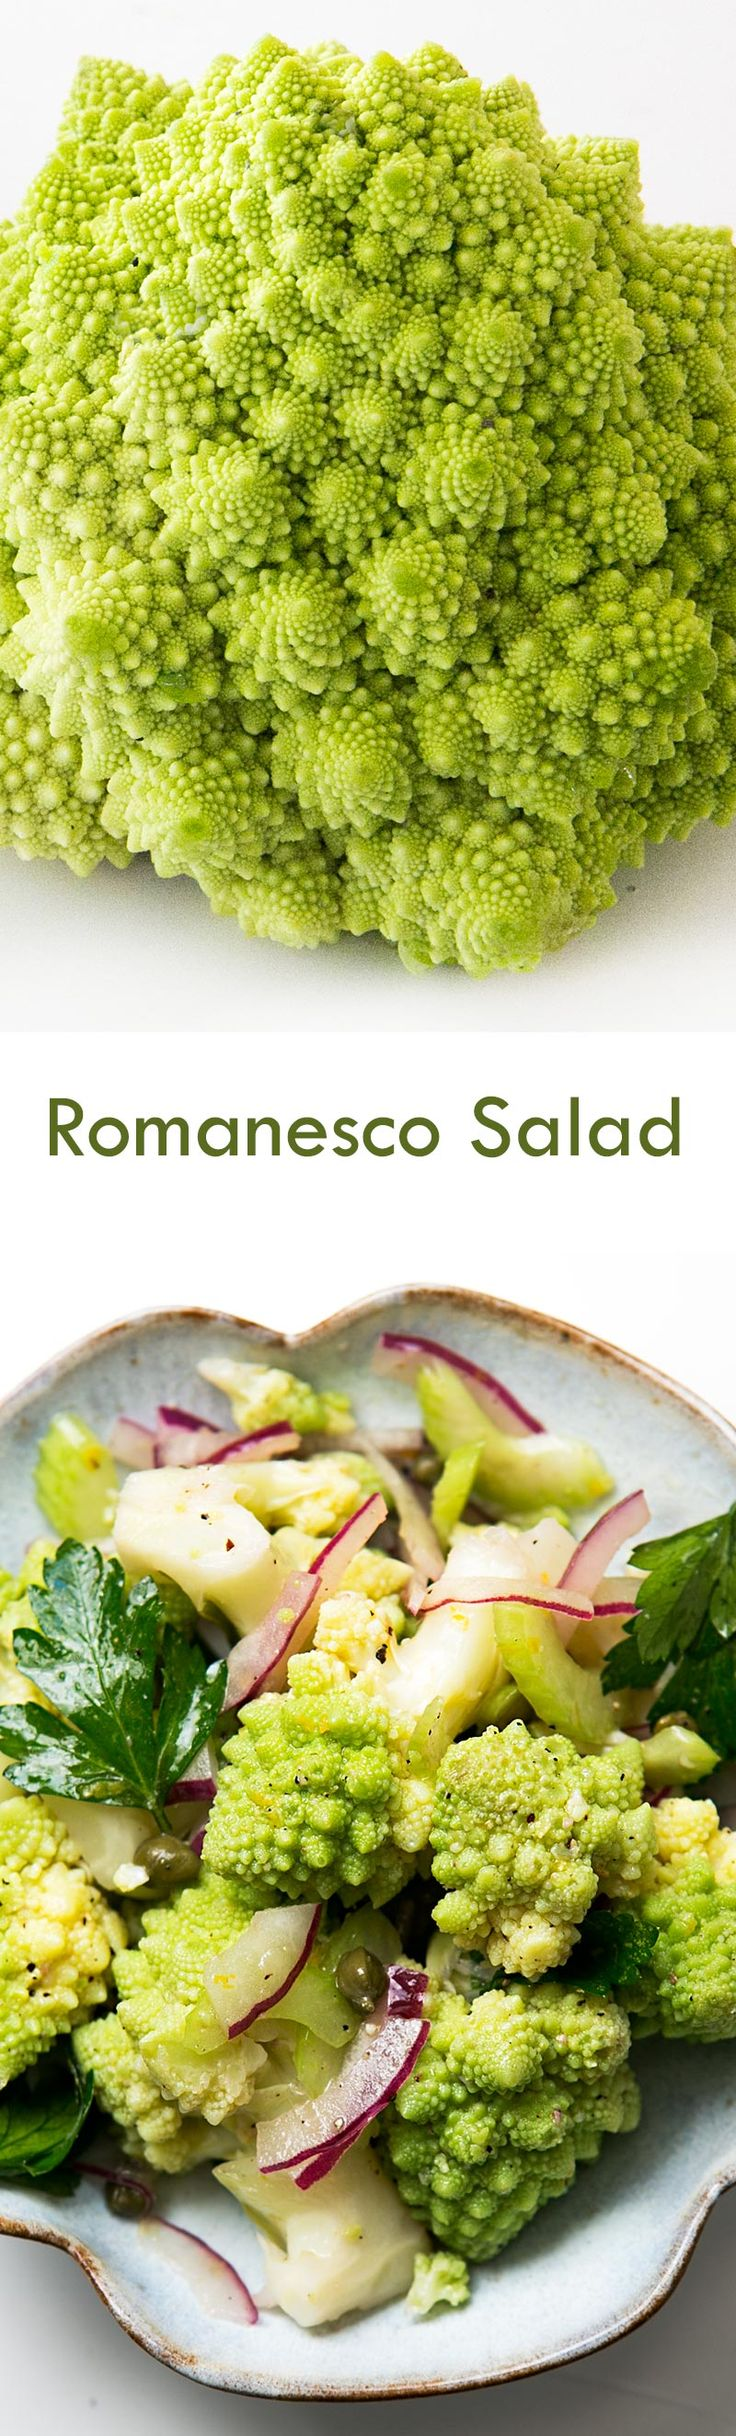 Romanesco broccoli salad! With steamed romanesco florets, red onions, celery, parsley, capers, marinated in vinaigrette. On SimplyRecipes.com